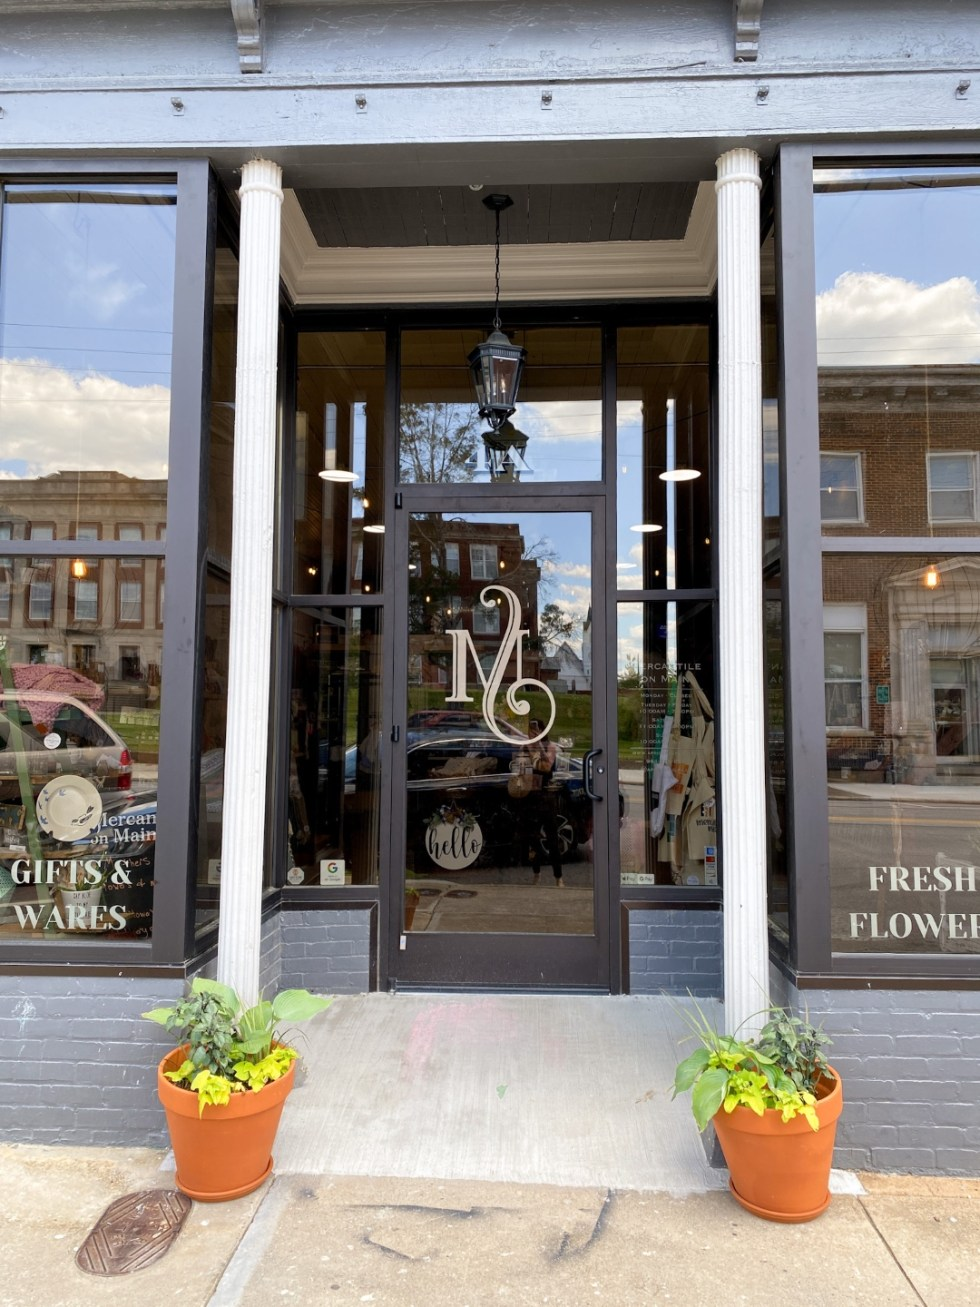 An Afternoon Trip to Franklin County, NC - I'm Fixin' To - @imfixintoblog | Franklin County NC by popular North Carolina travel blog, I'm Fixin' To: image of a flower and gift shop.